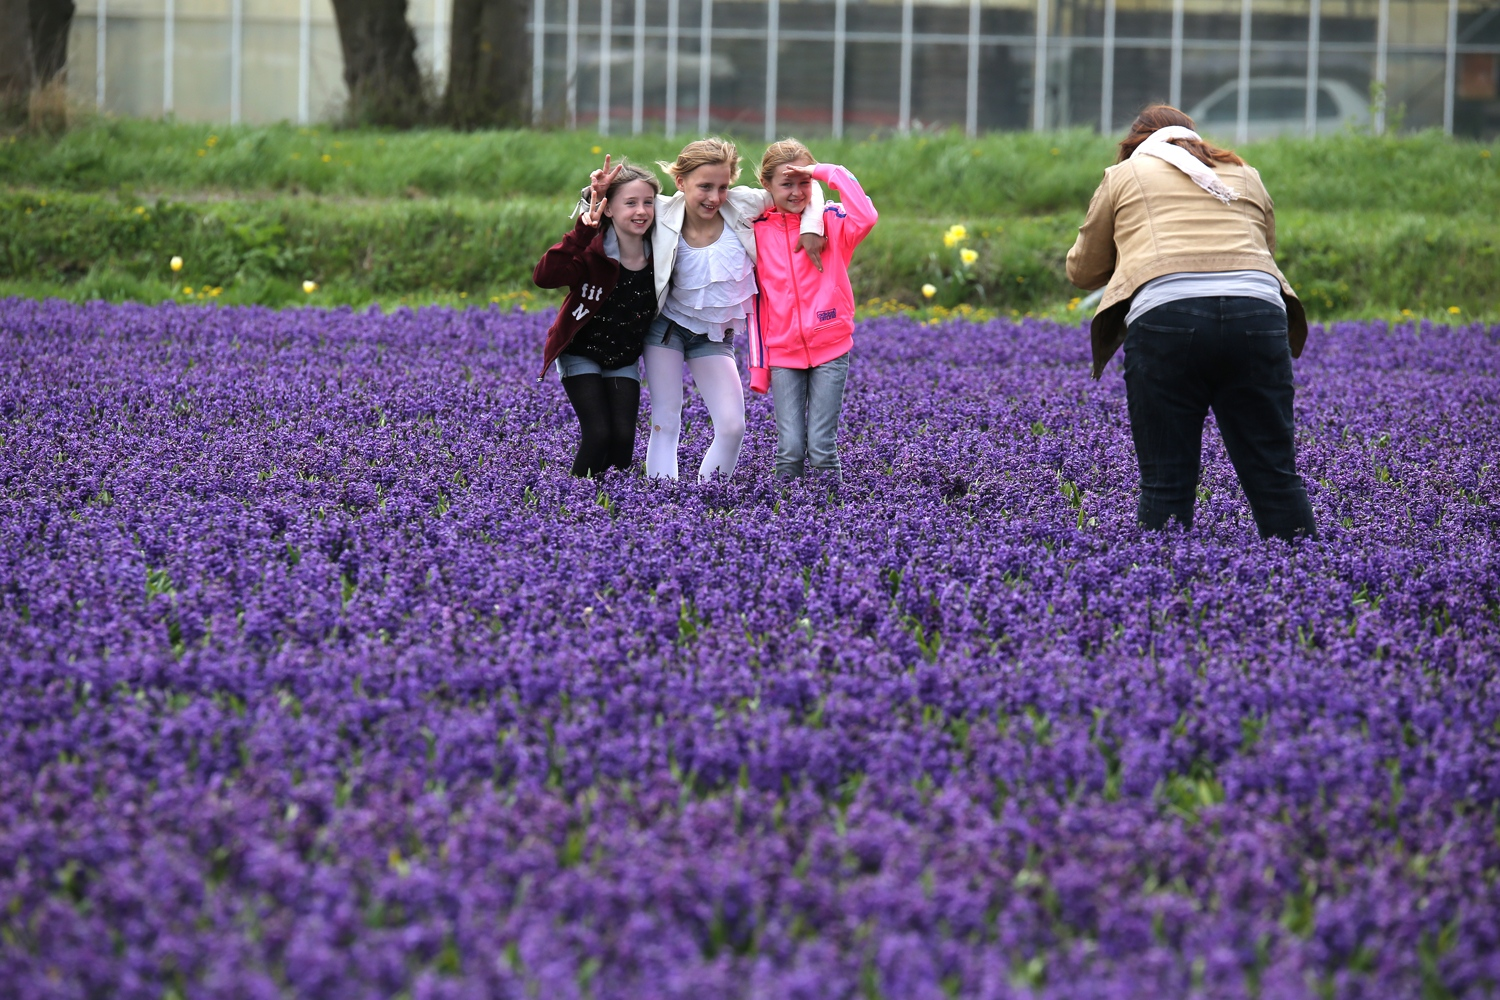 A group of young tourists pauses for photographs in a field of flowers near Den Helder, Nord-Holland. Tourism is an important economic sector in the Netherlands. The country receives some 10 million foreign visitors every year.